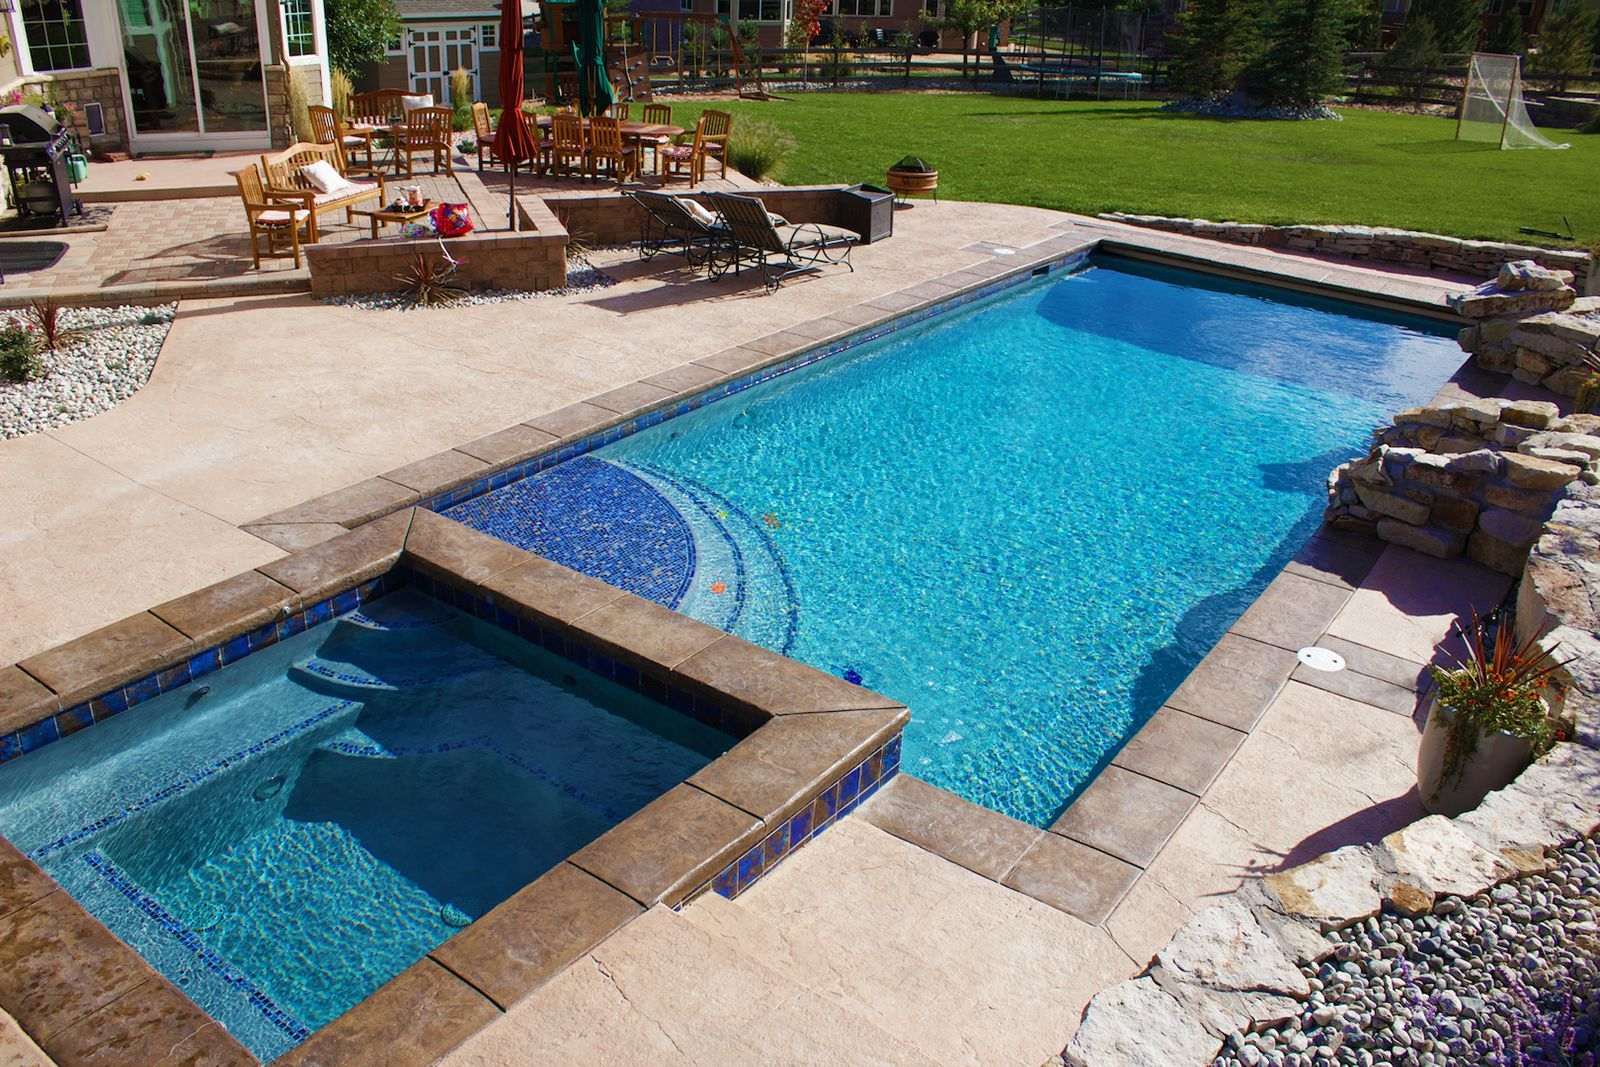 Pool and spa with patio and BBQ   Backyard pool and spa ...